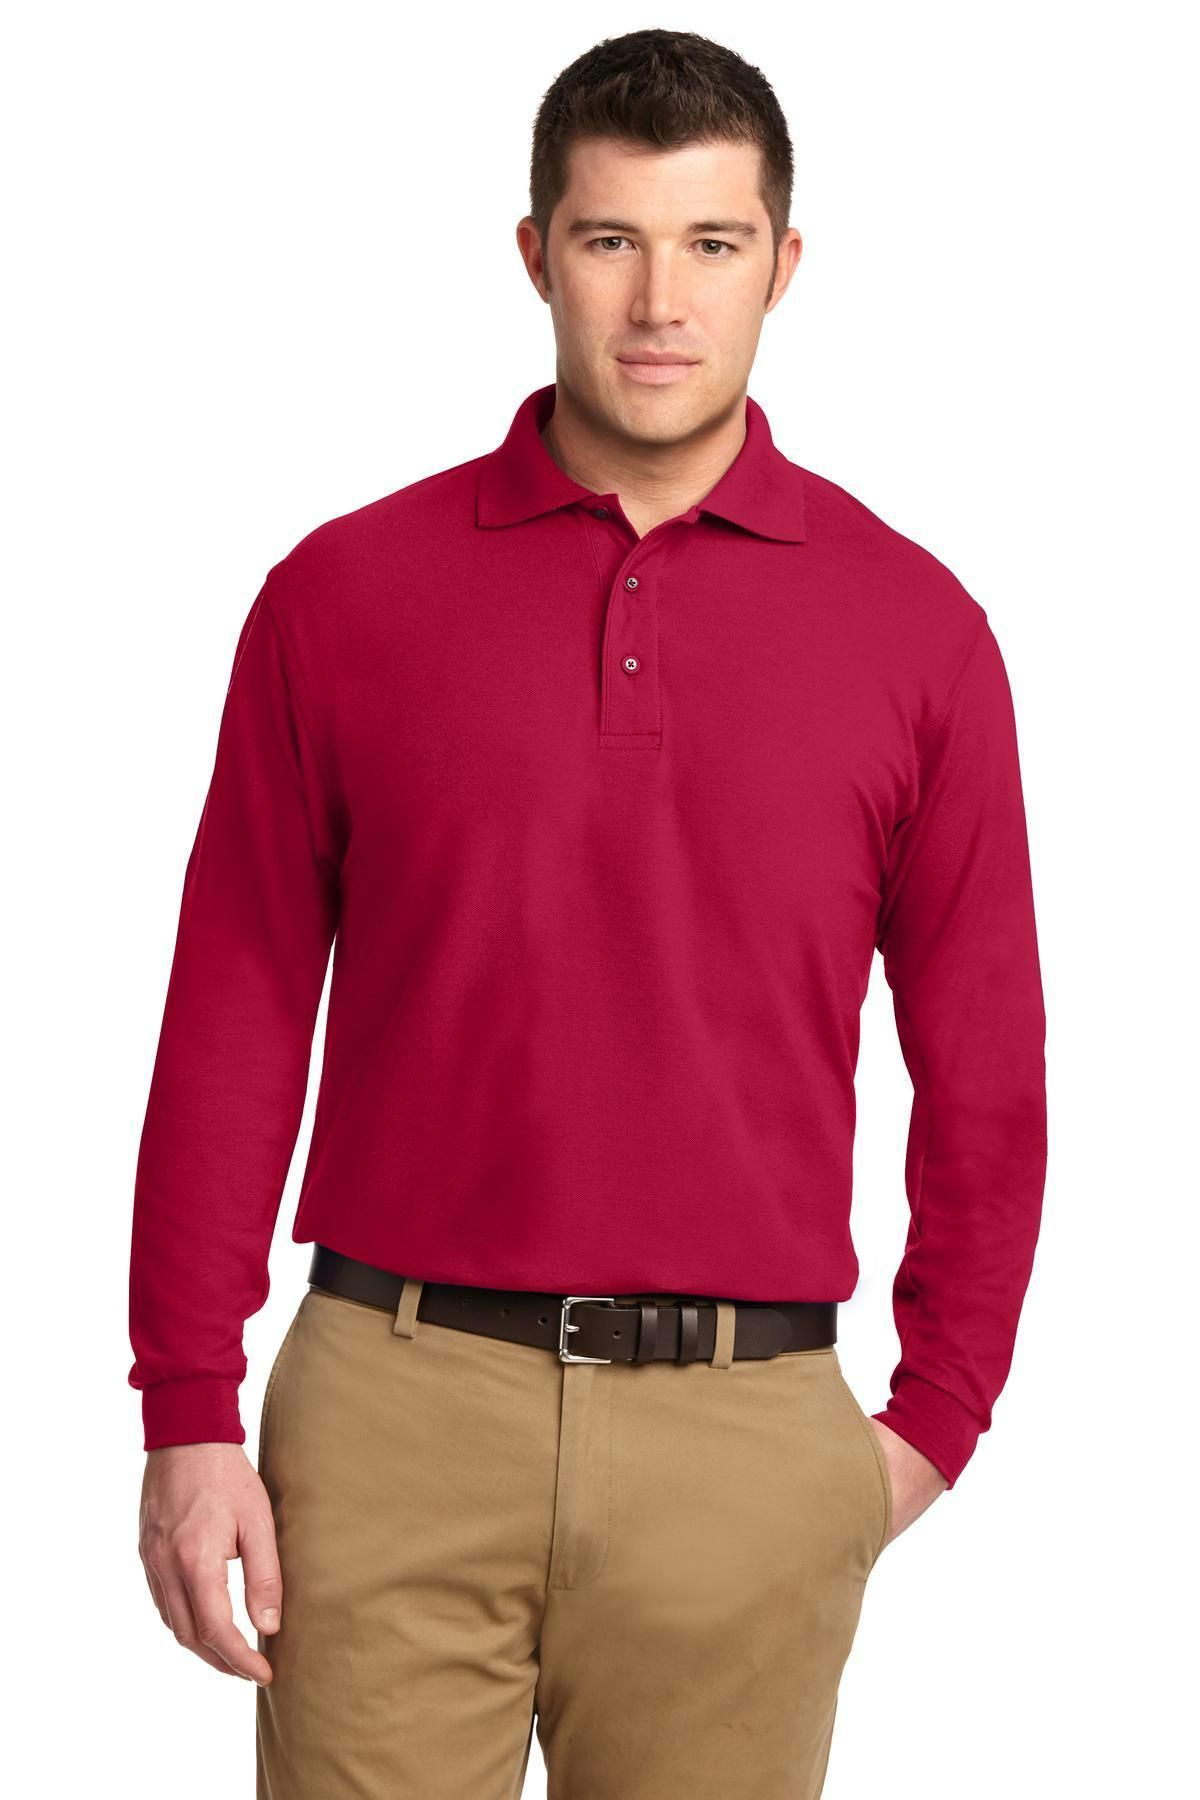 47d657ffb Port Authority Silk Touch Long Sleeve Polo. K500LS